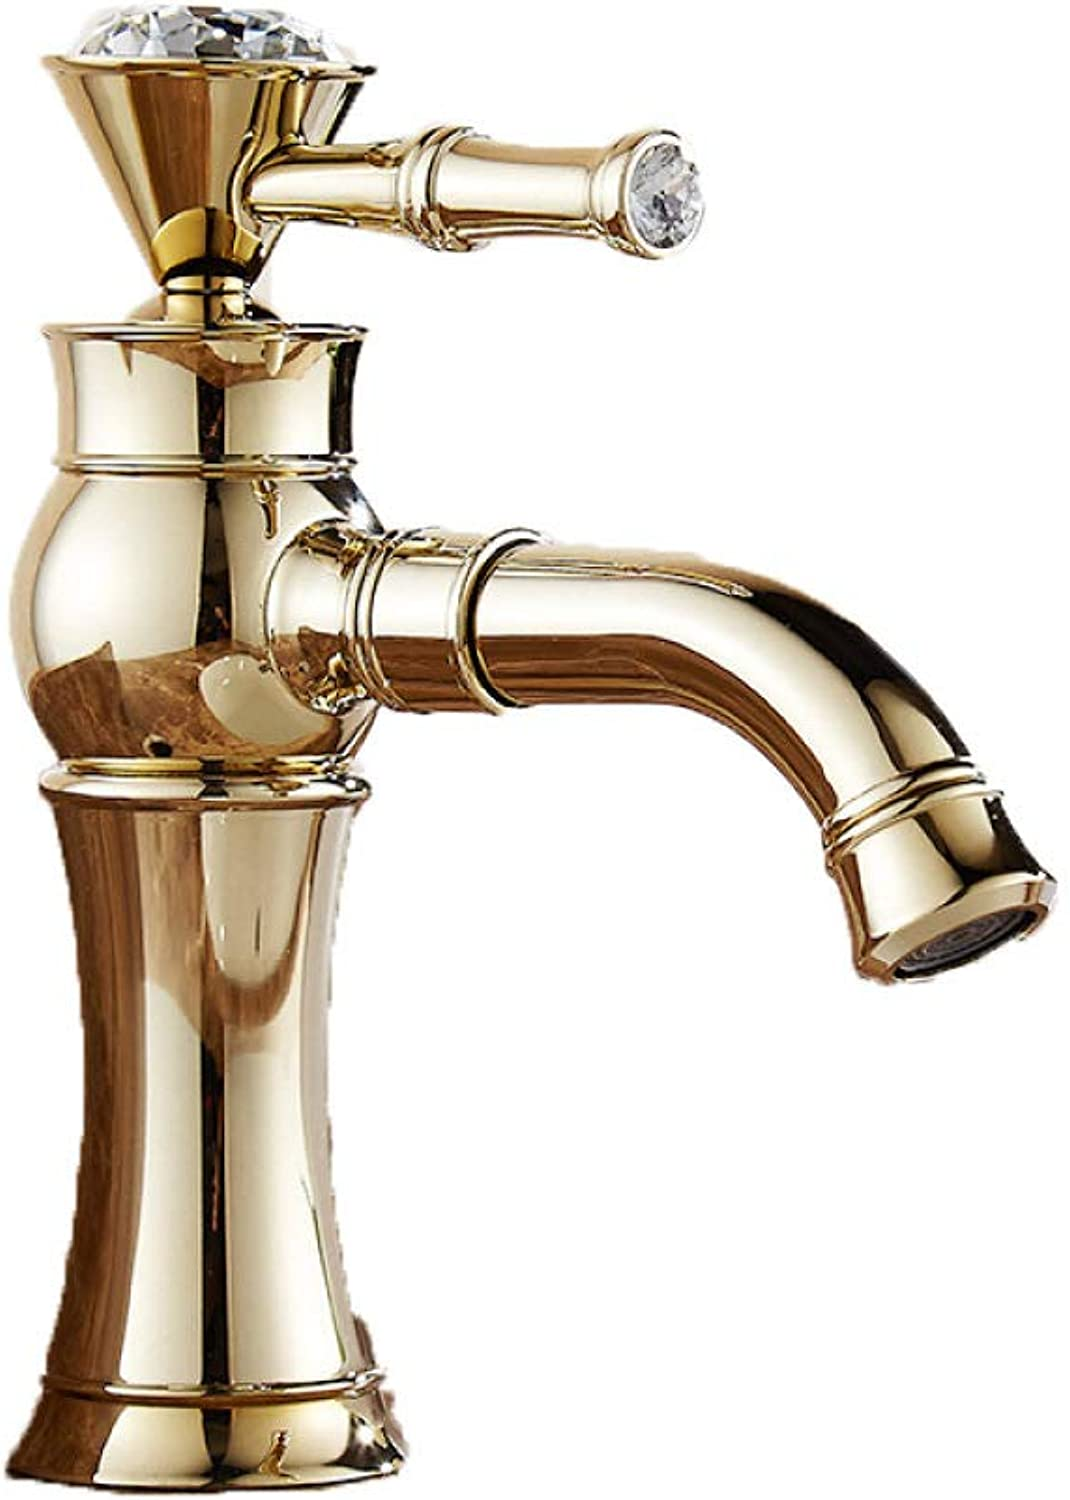 PZXY Faucet gold Faucet 360 Degrees redating All Copper Faucet Mouth Turn hot and Cold Basin Faucet